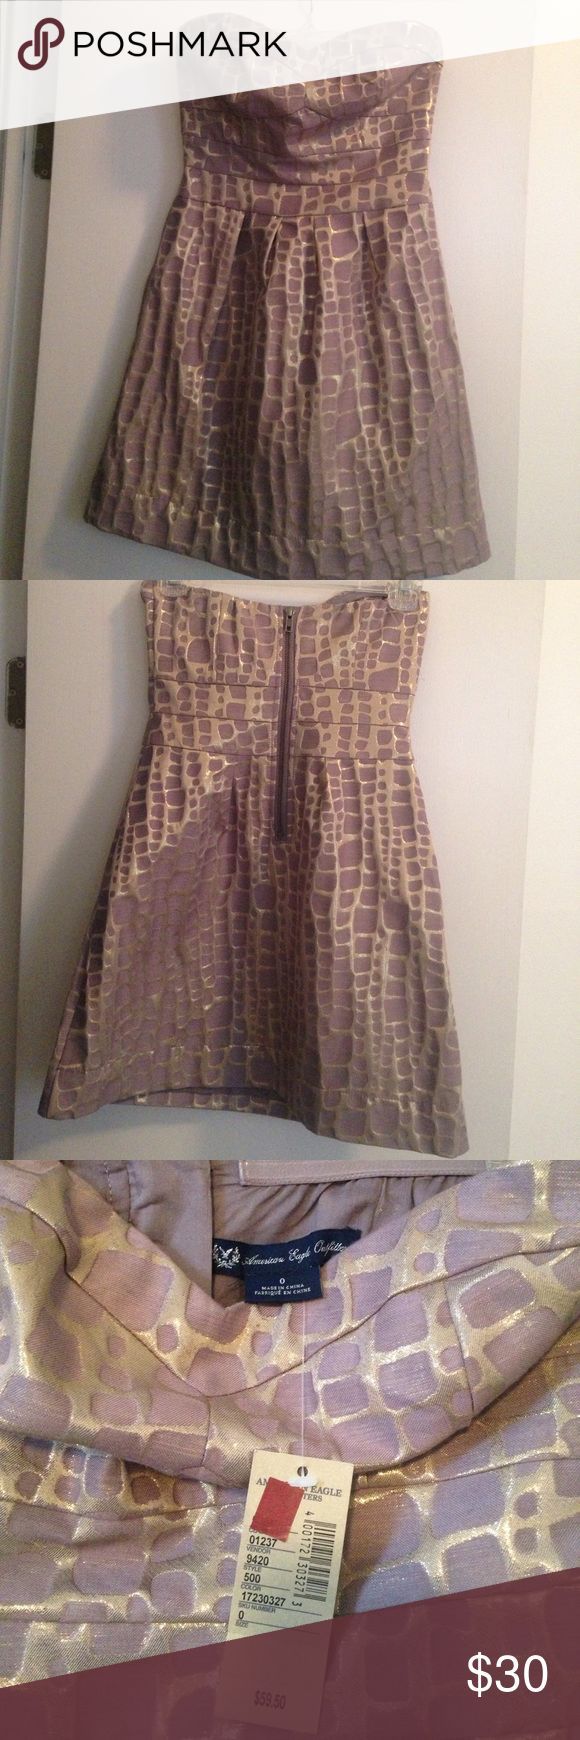 """Cute little cocktail or night out dress Purple and gold mini dress, size 0 from American Eagle, never worn. I'm 5'6"""" and it was just a little too short for my comfort but so pretty!! American Eagle Outfitters Dresses Mini"""